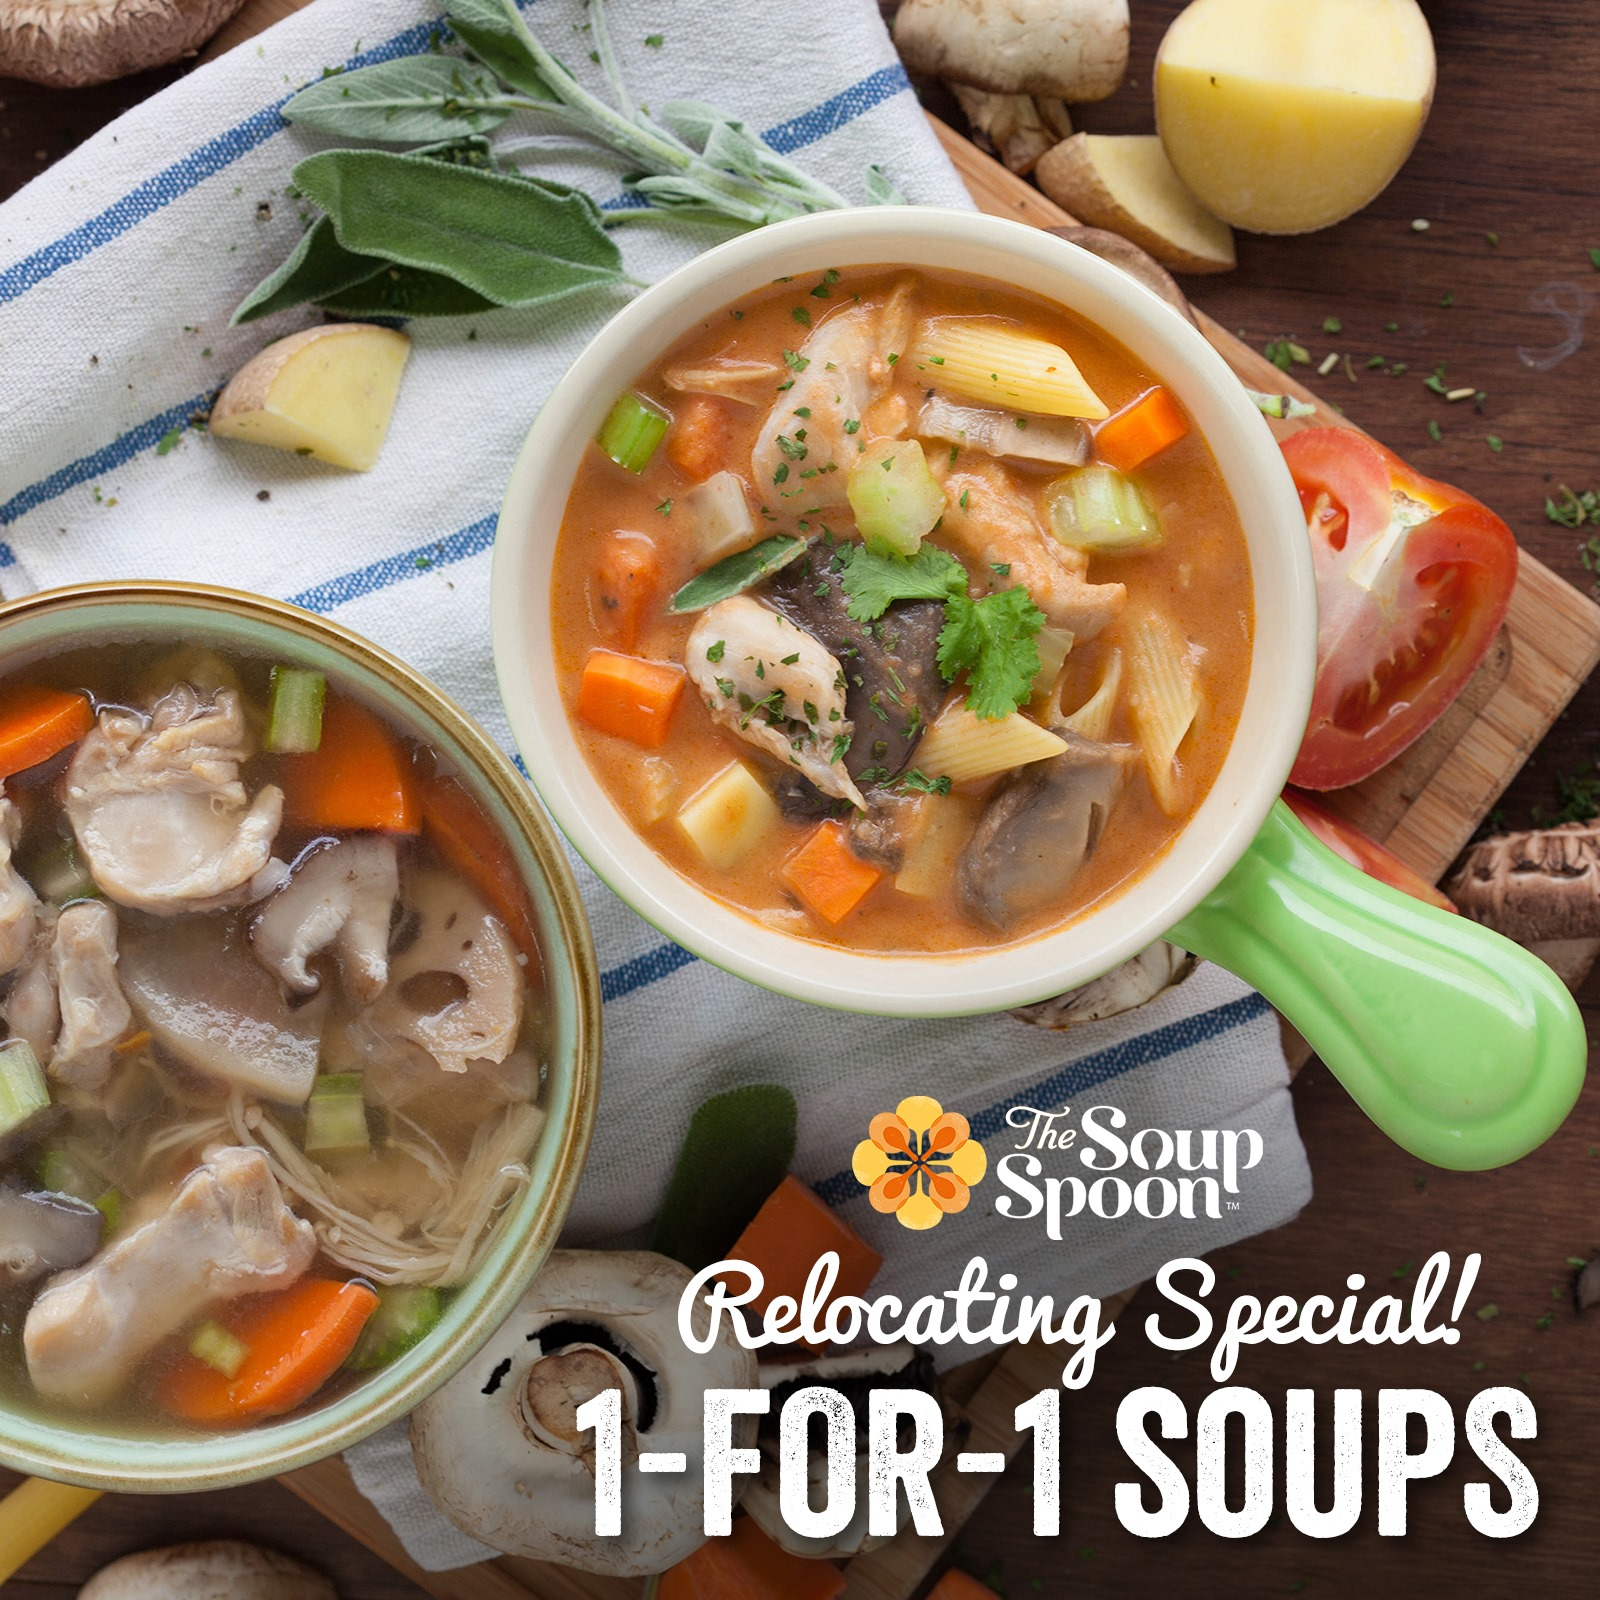 The Soup Spoon Singapore 3 Weeks of TGIF 1-for-1 Relocating Special Promotion 8-22 Nov 2019 | Why Not Deals & Promotions